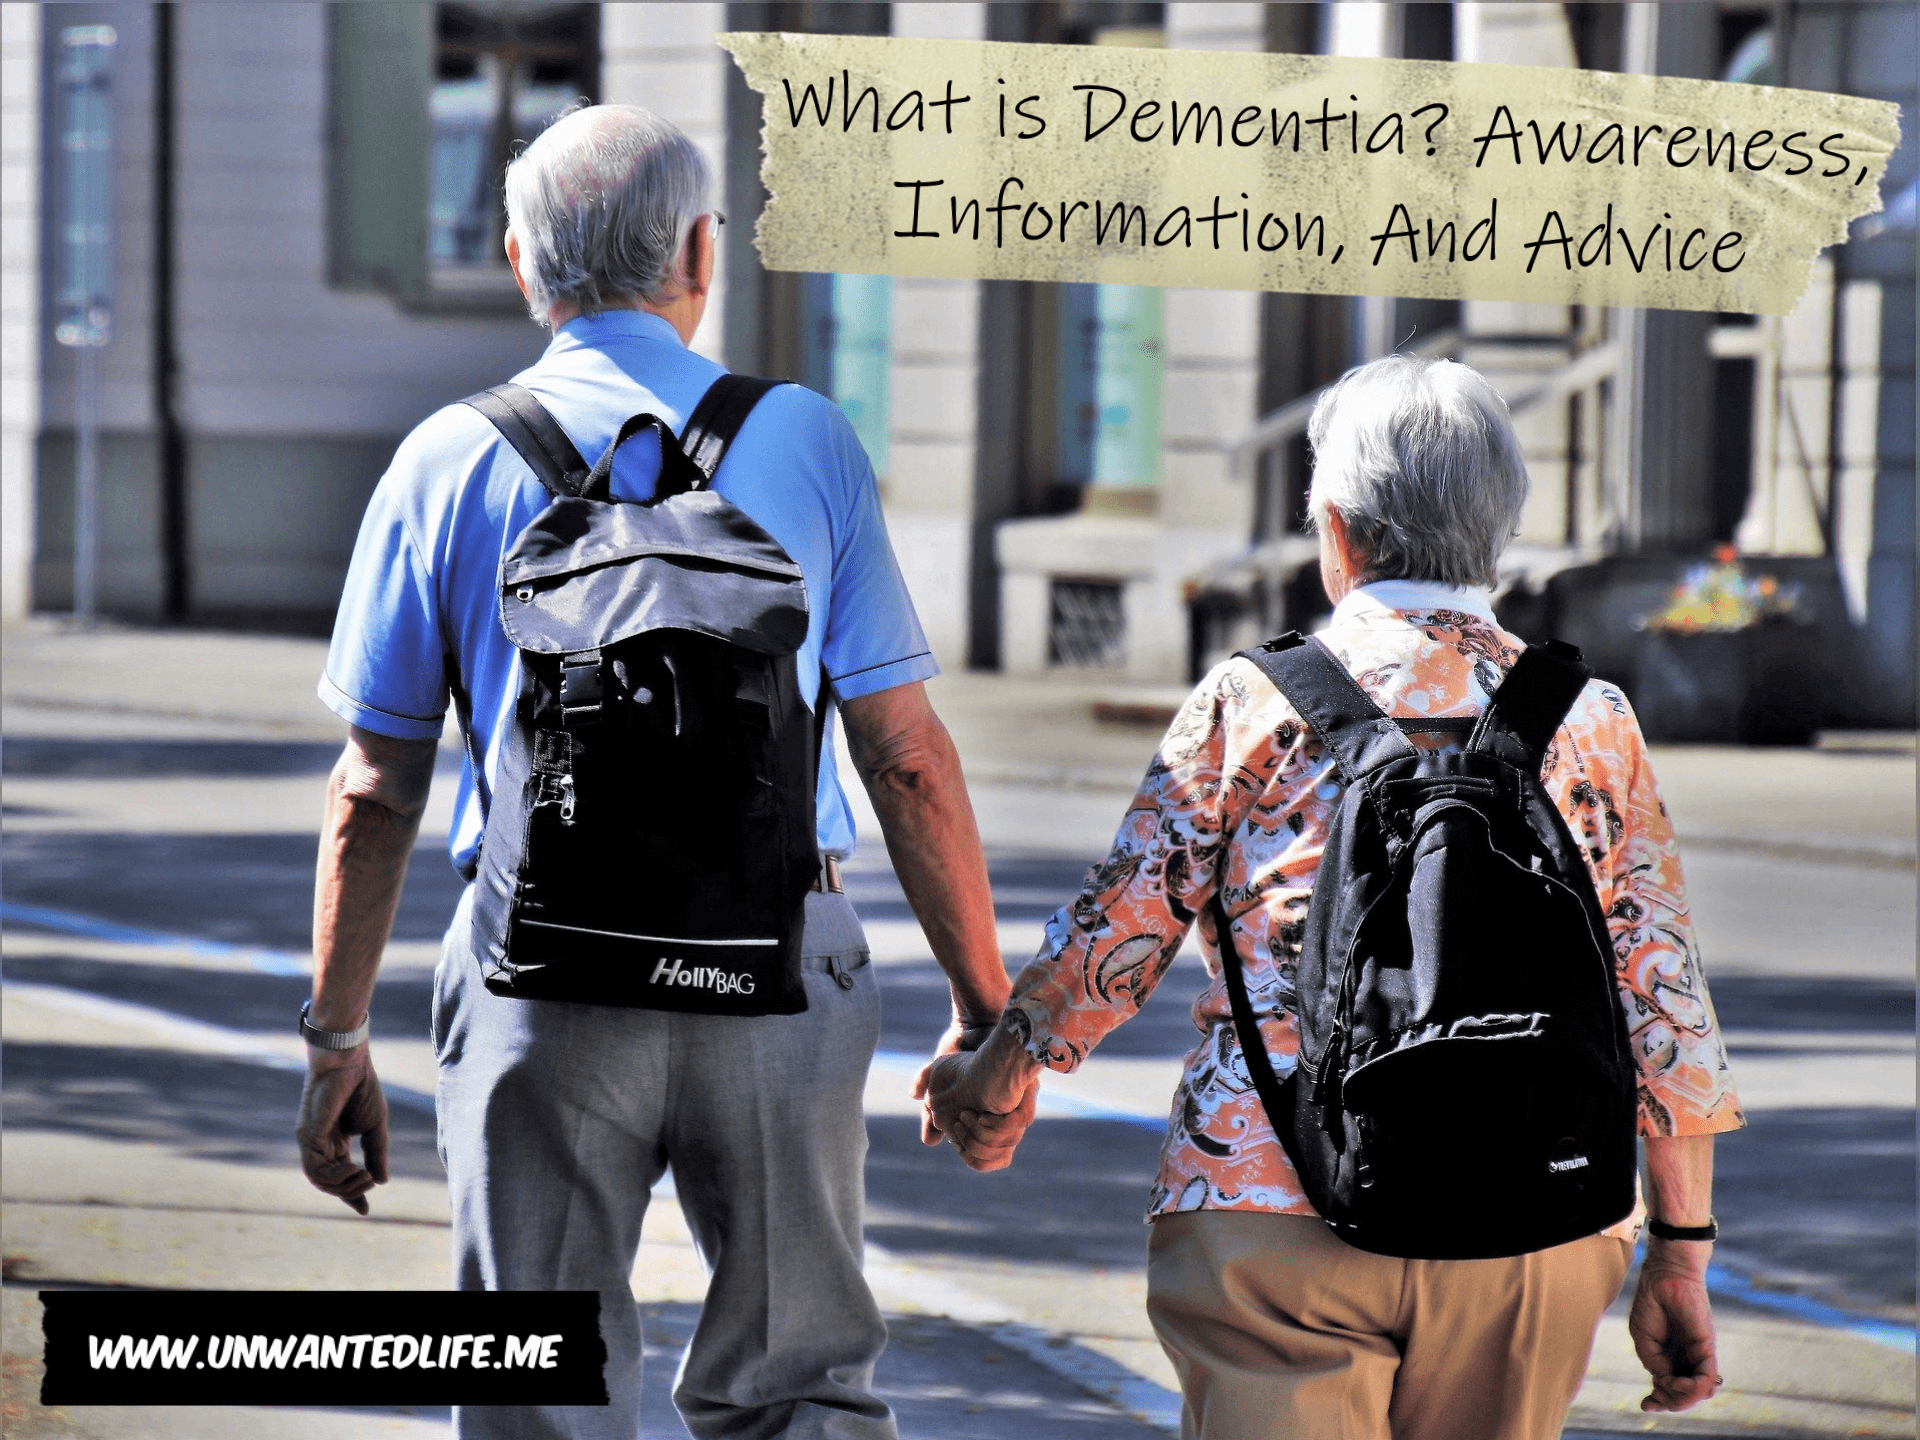 An old couple walking through a city holding hands with the title of the article - What is Dementia Awareness, Information, And Advice - in the top corner